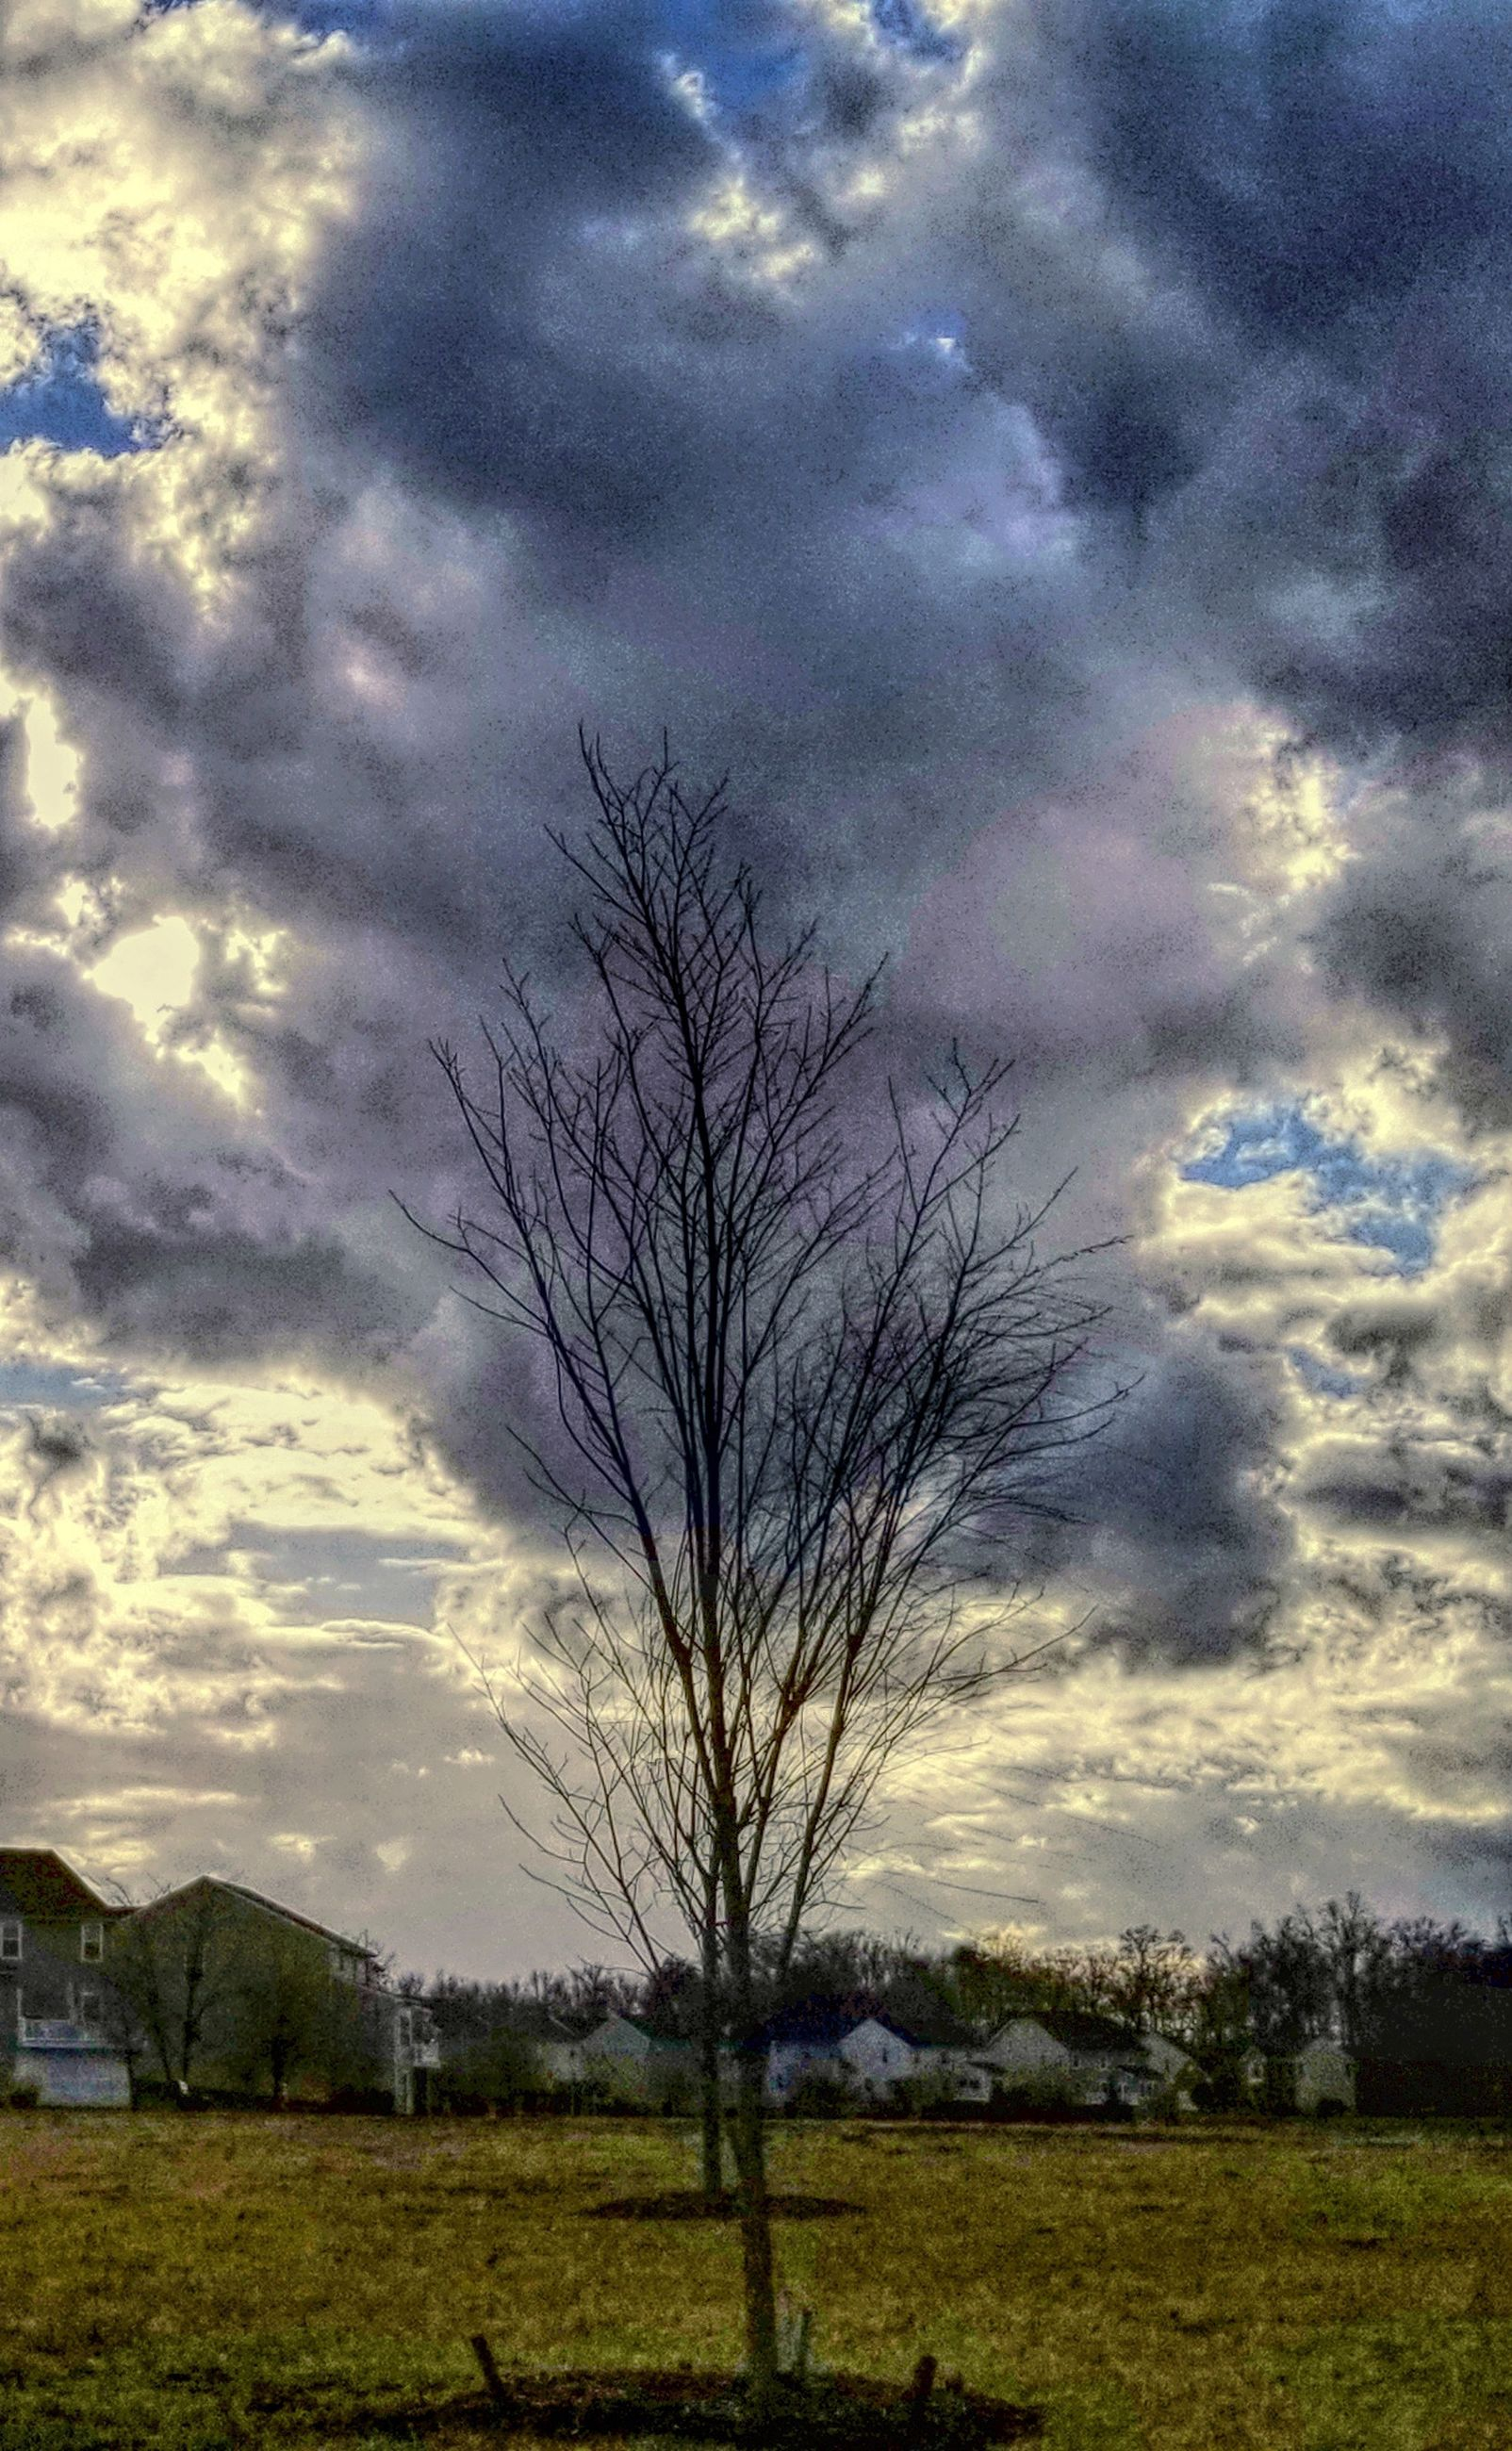 cloud - sky, sky, tree, tranquil scene, plant, beauty in nature, tranquility, landscape, scenics - nature, bare tree, nature, field, environment, land, no people, sunset, outdoors, grass, non-urban scene, isolated